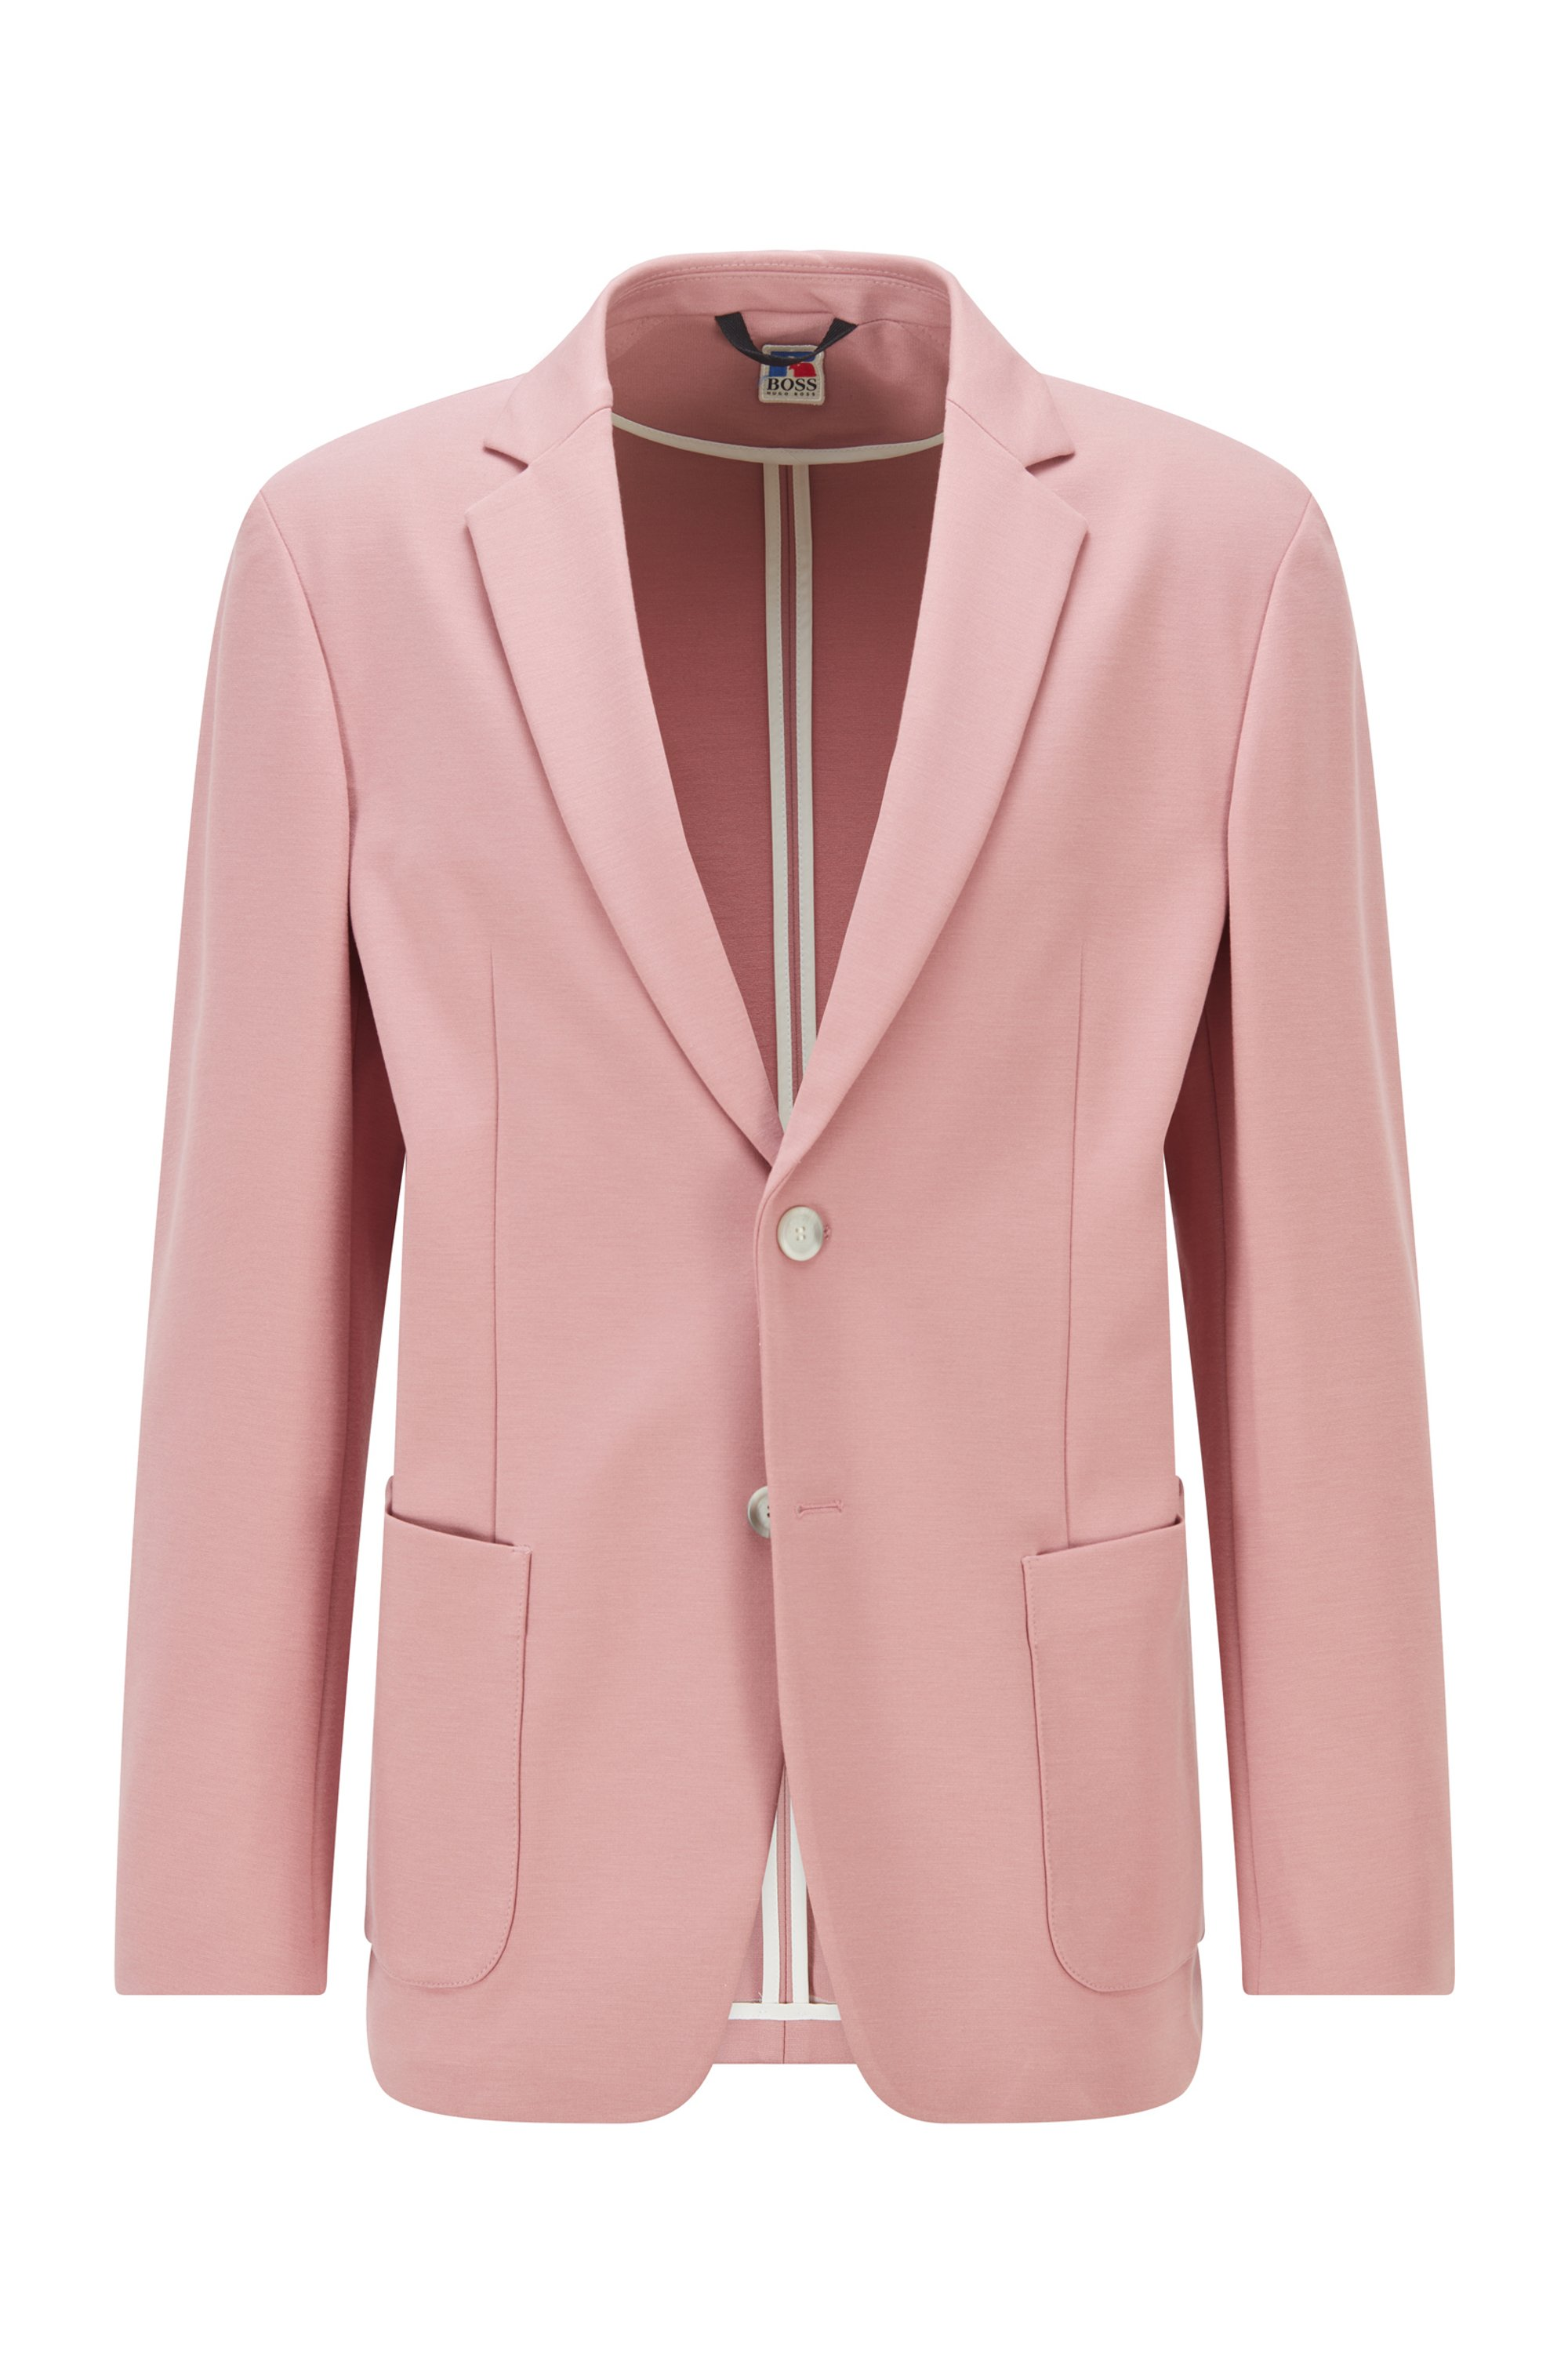 Regular-fit jacket in stretch jersey with exclusive logo, light pink